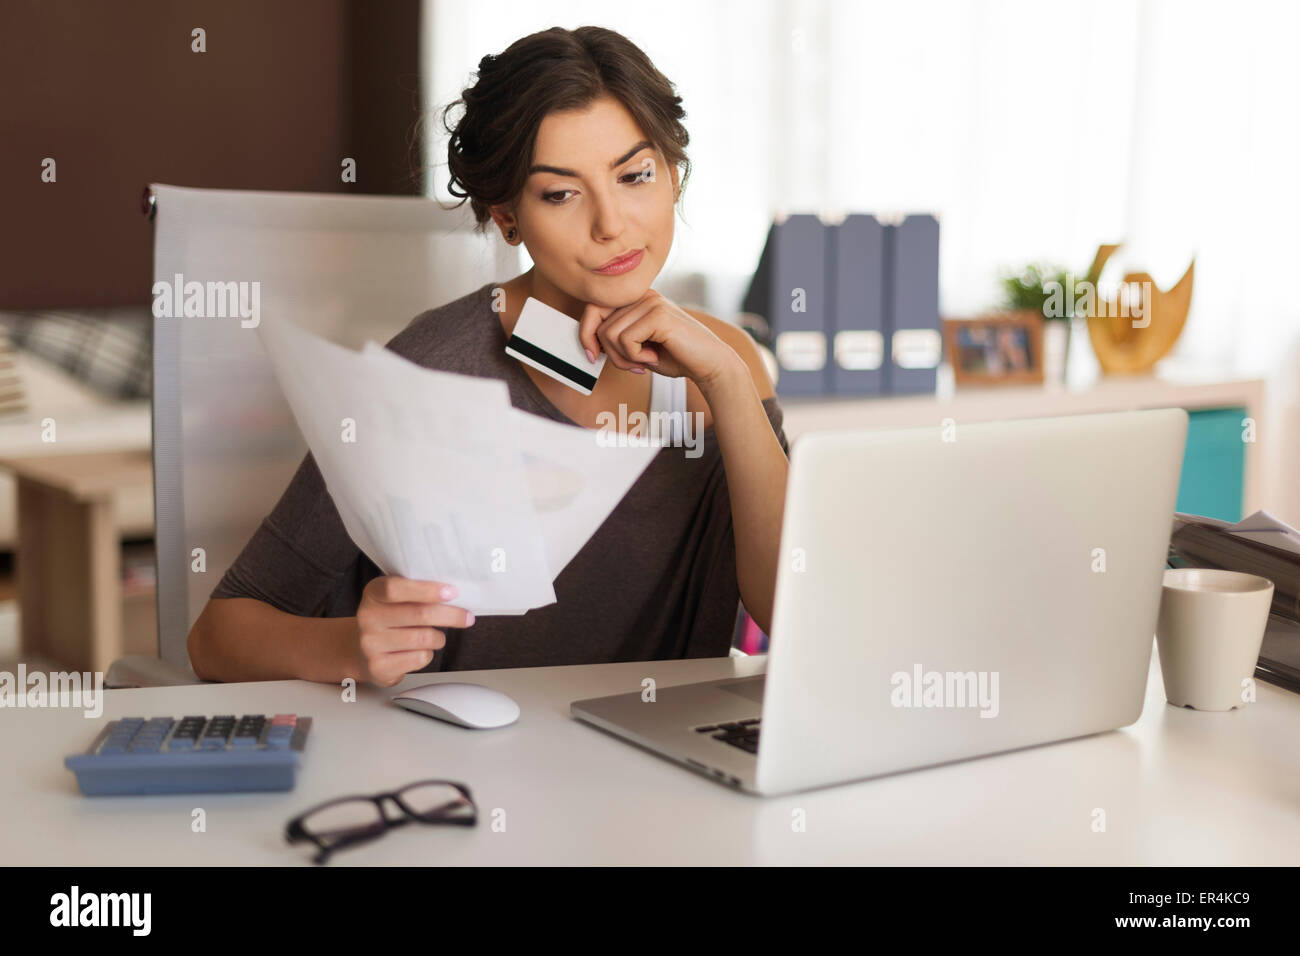 Pensive woman paying bills at home. Debica, Poland - Stock Image